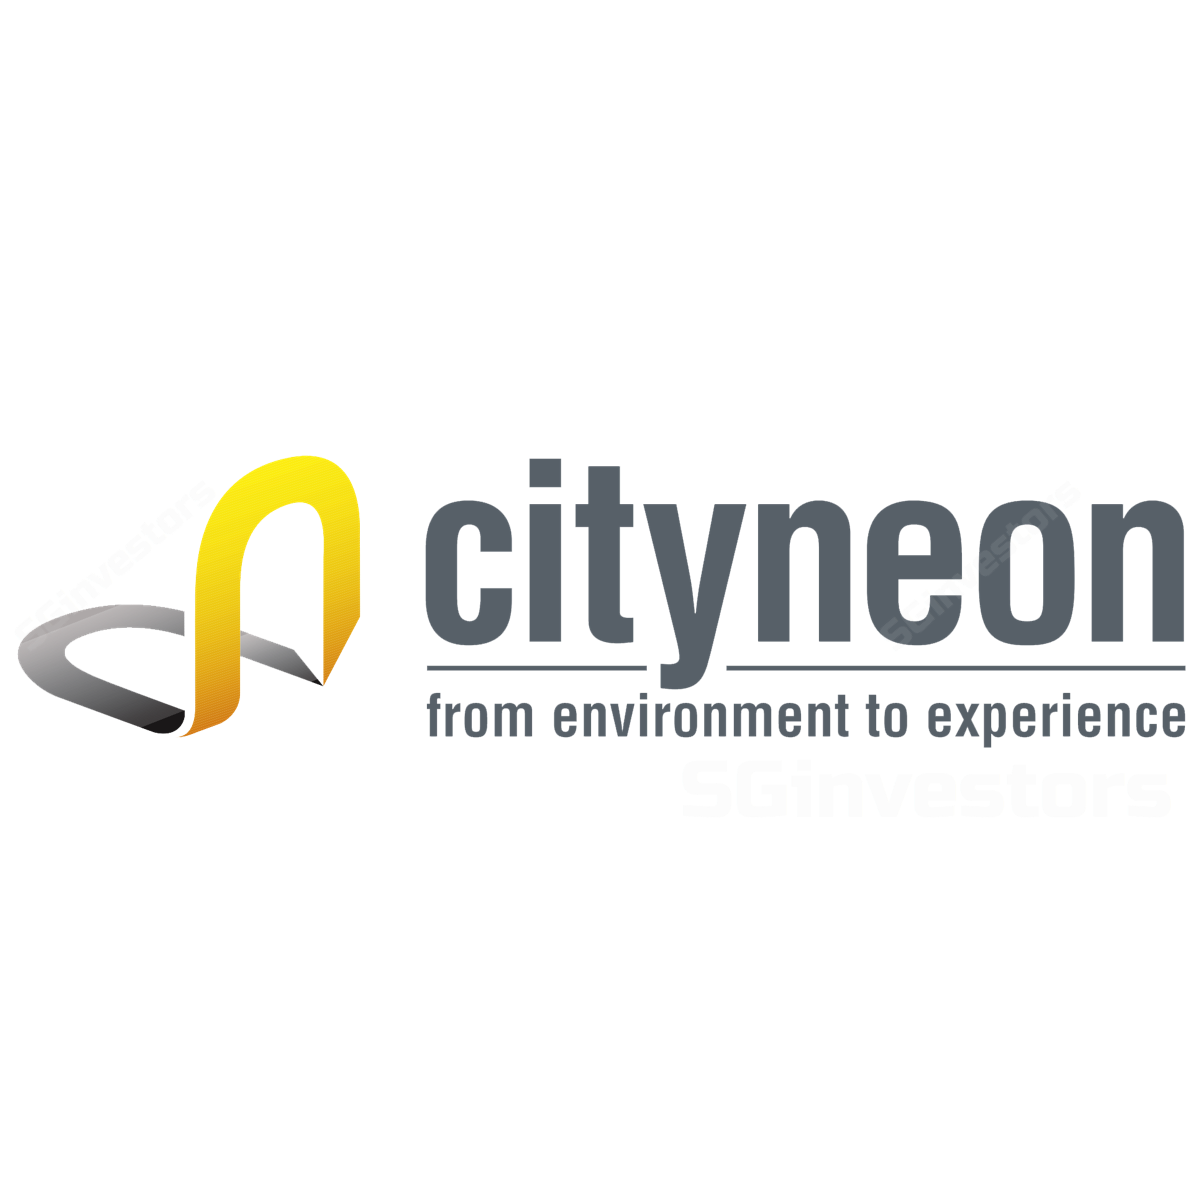 Cityneon Holdings (CITN SP) - UOB Kay Hian 2018-03-01: 2017 Results Above Consensus Expectation; Orderbook Secure For 2018